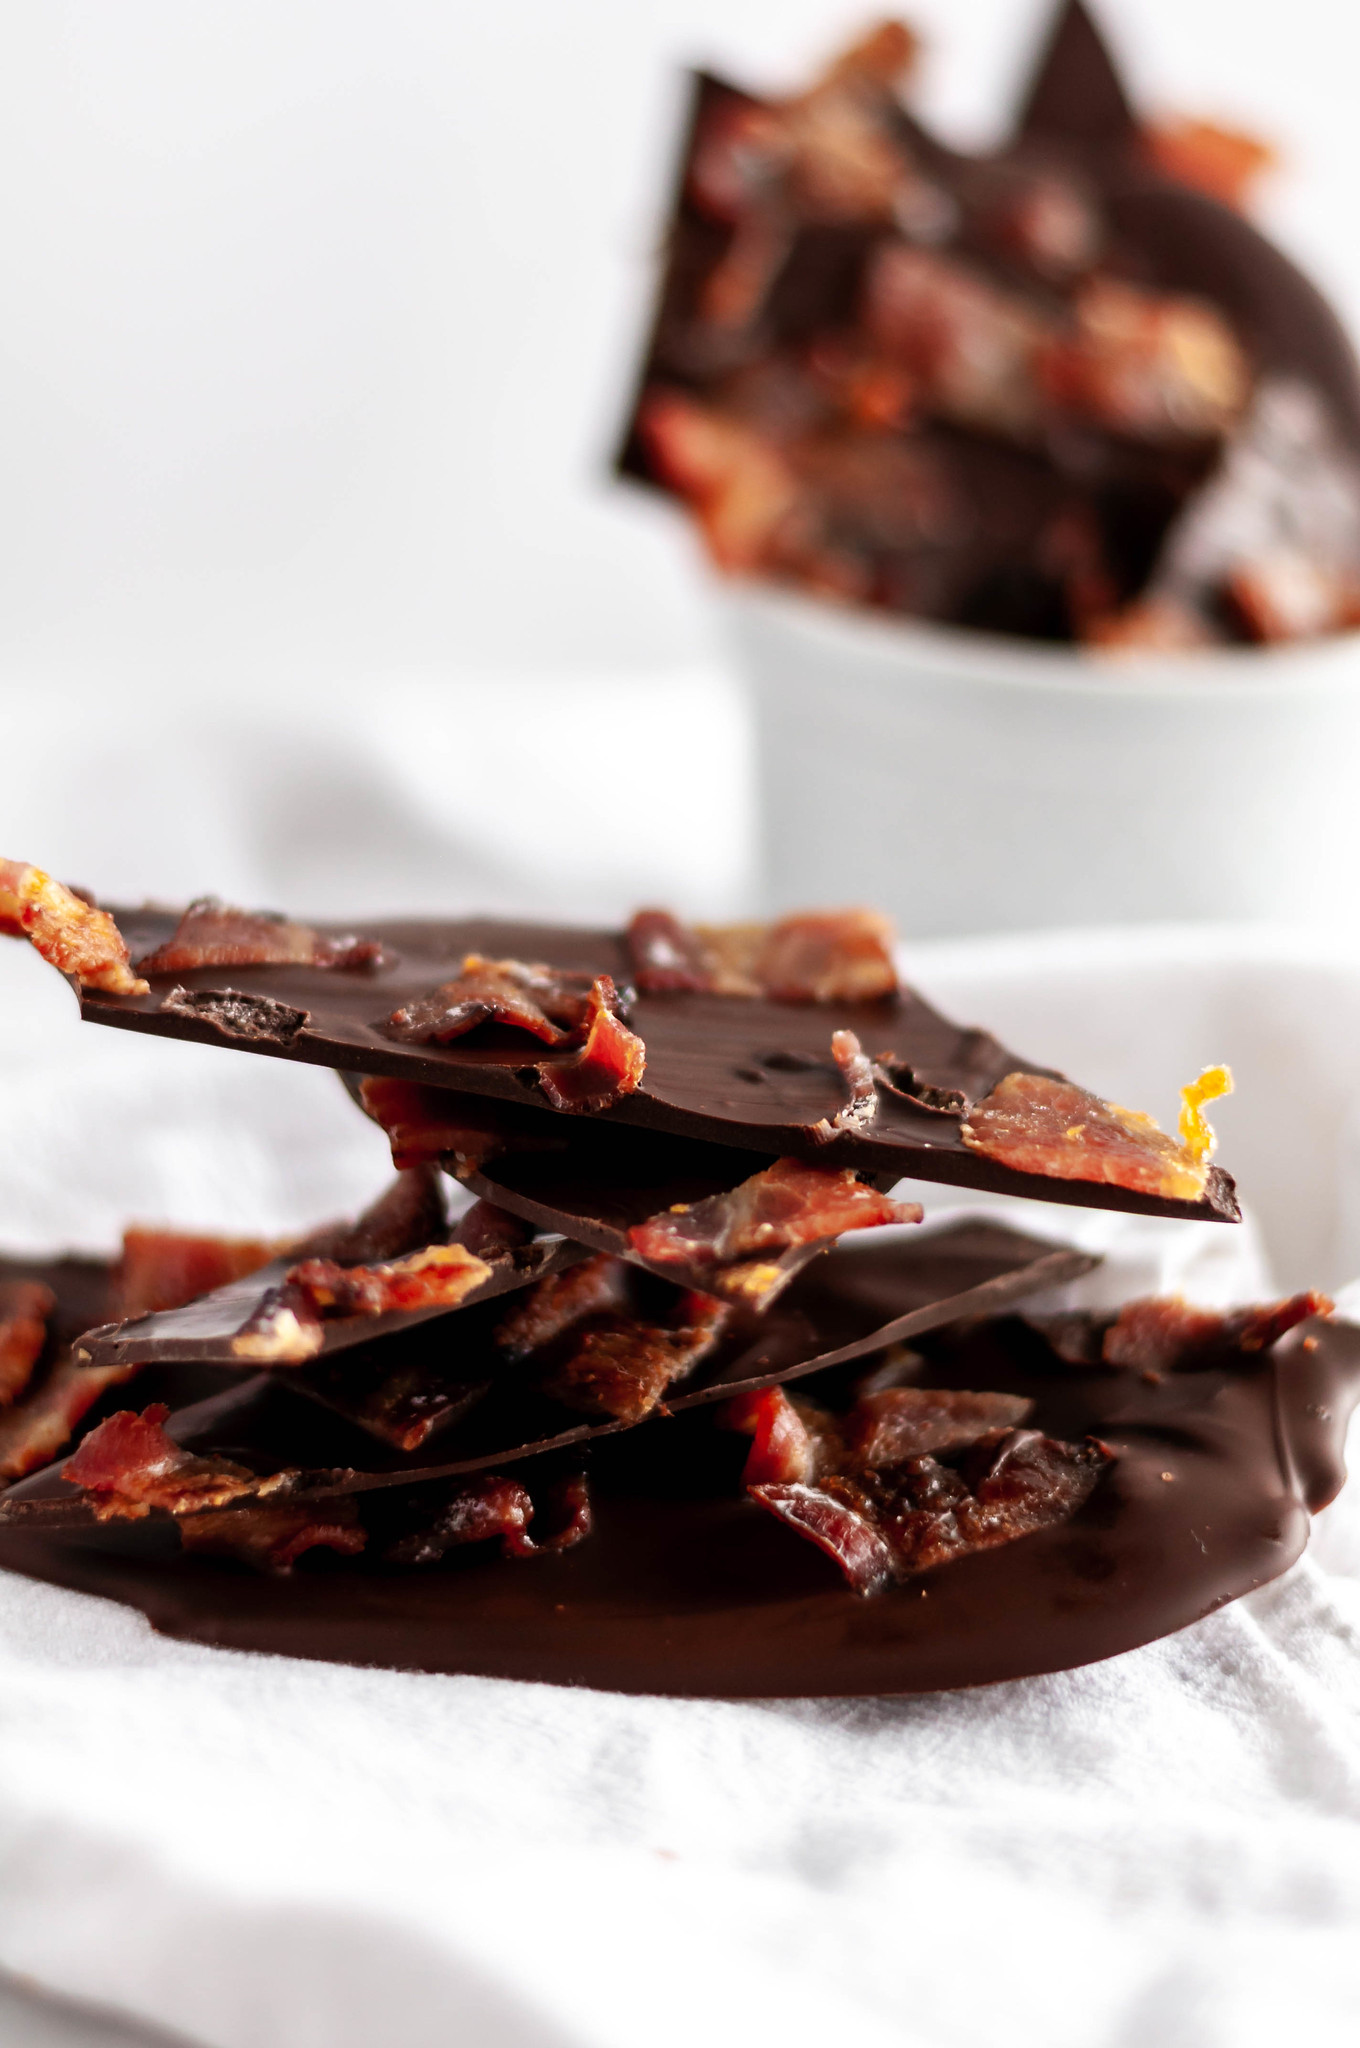 Candied Bacon Bark is a super simple, 4-ingredient treat that is perfect for the bacon lover in your life this Christmas. A fun, different addition to your Christmas baking list this year.